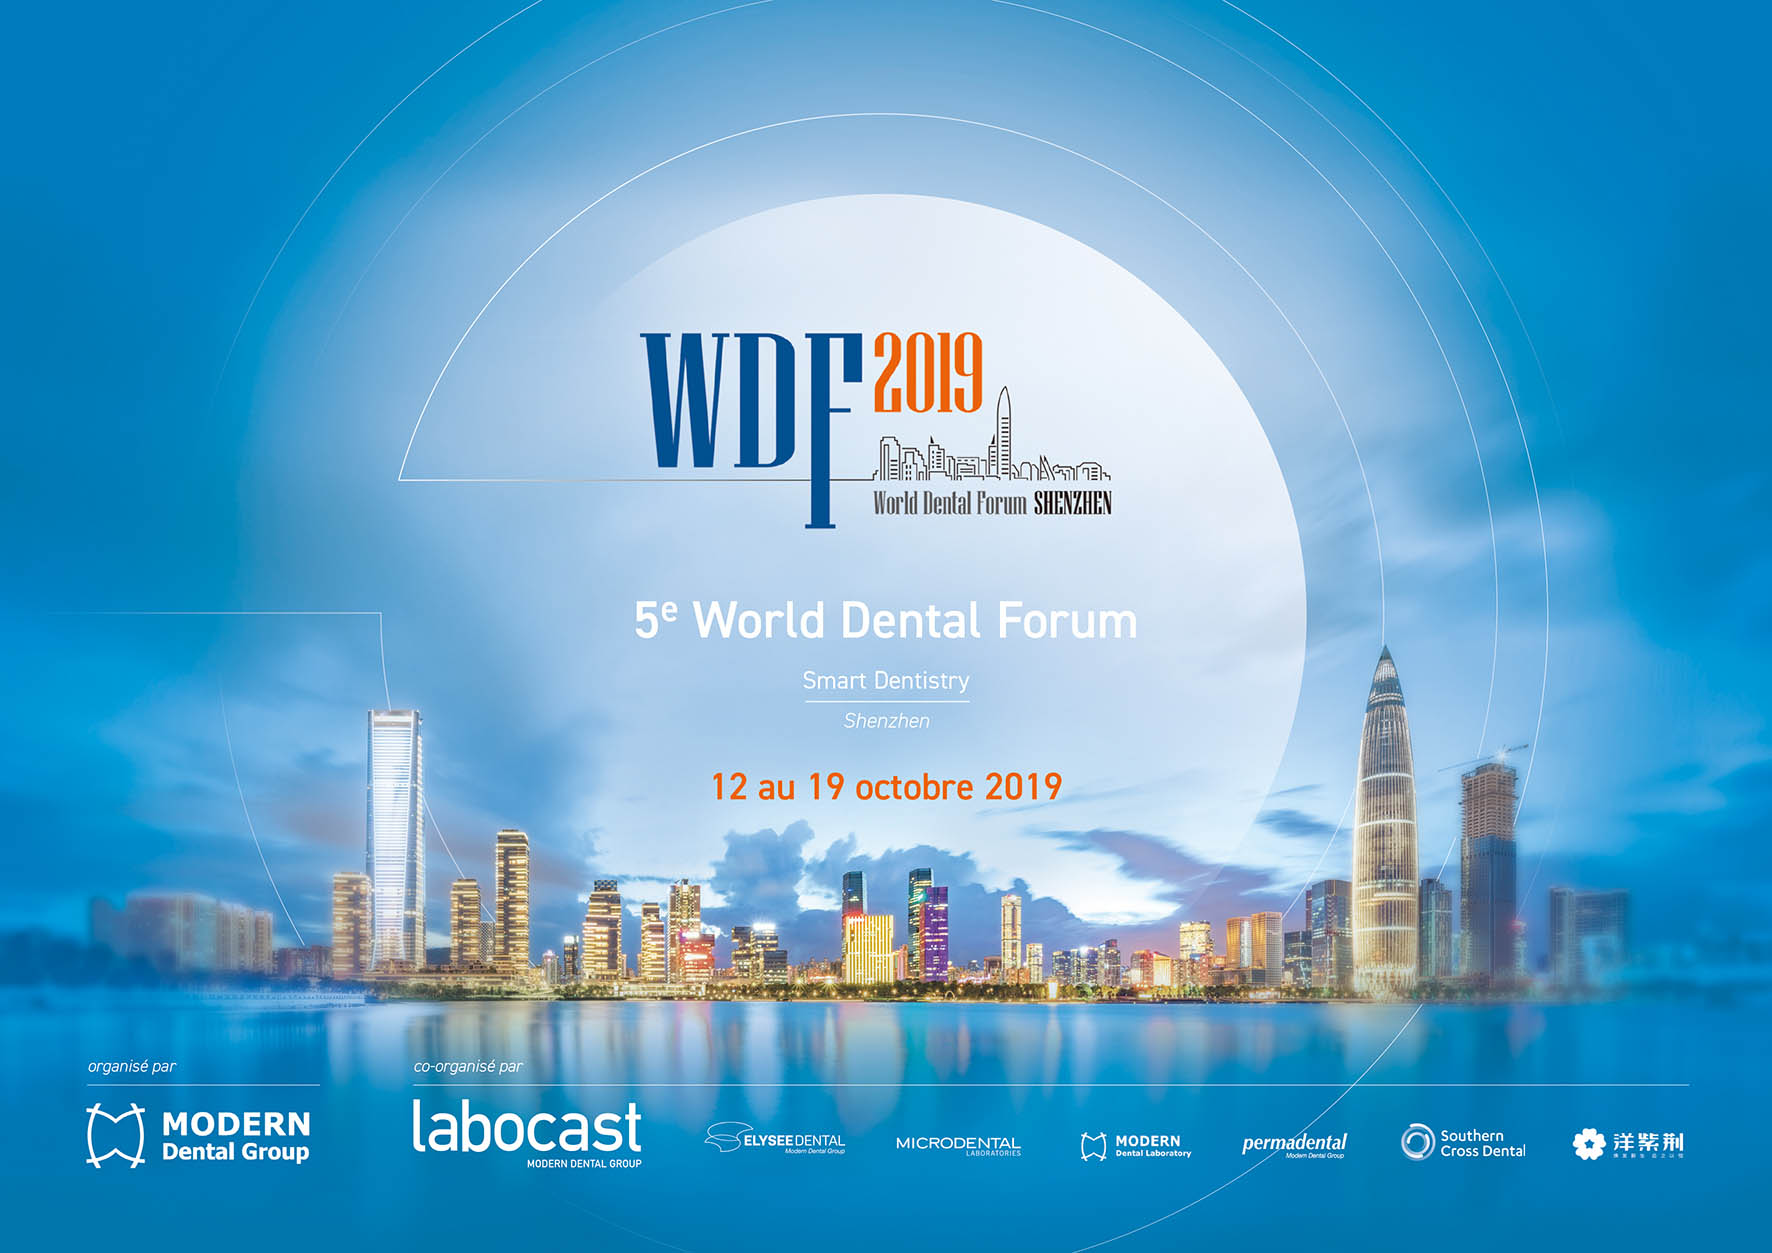 Labocast au 5ème World Dental Forum